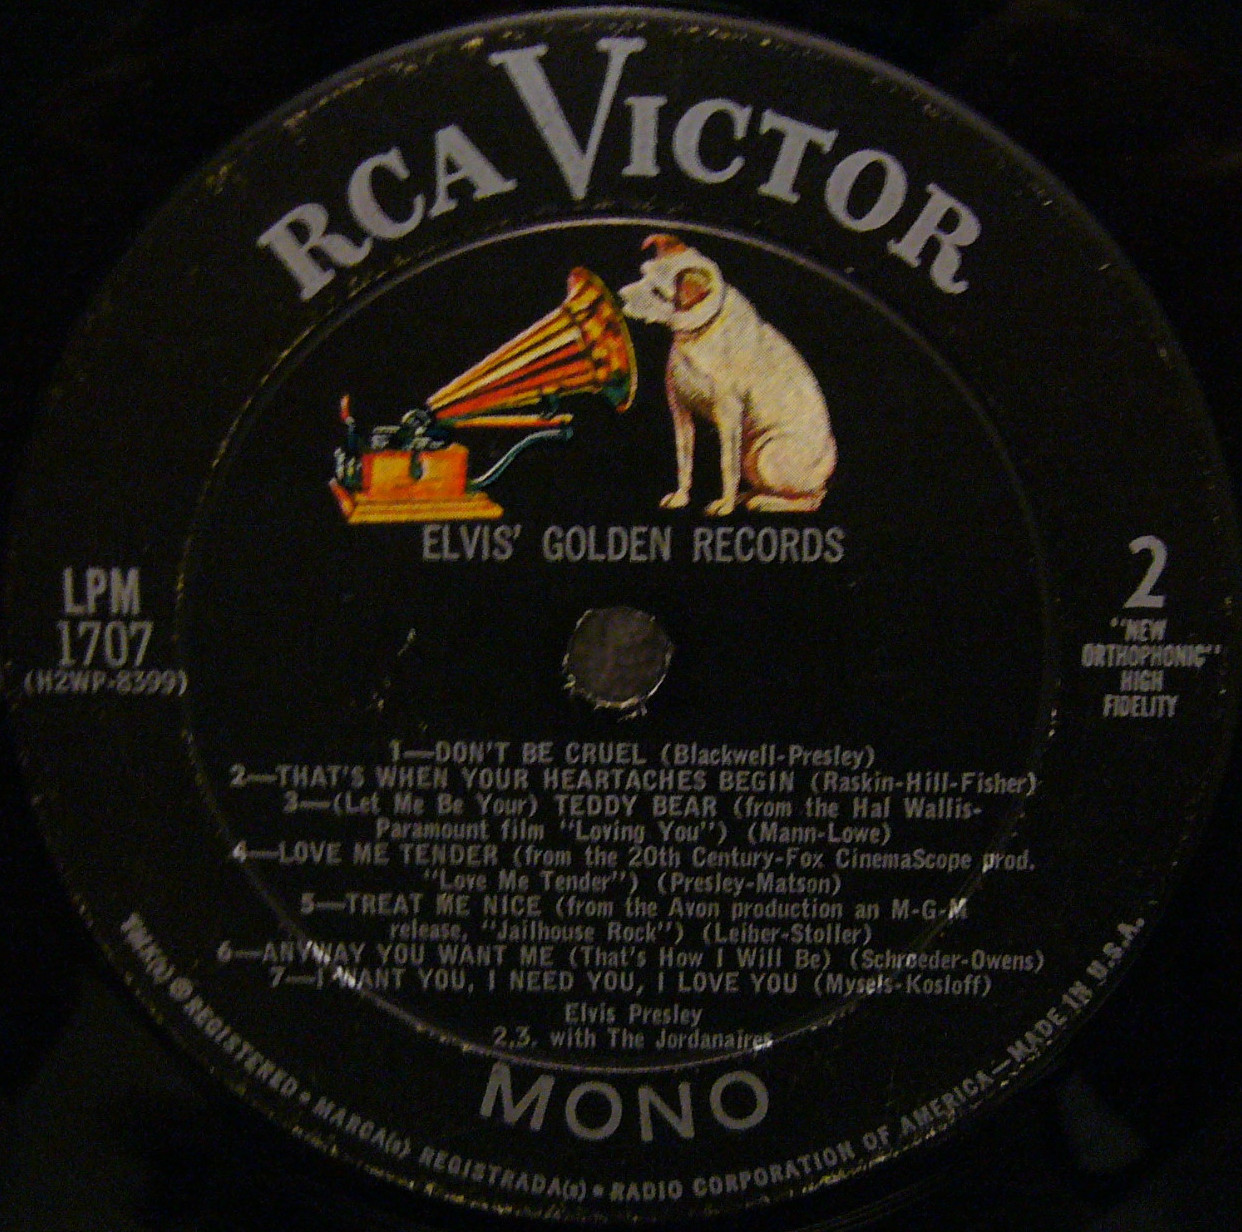 ELVIS' GOLD RECORDS  Lpm1707re2dfiqvw